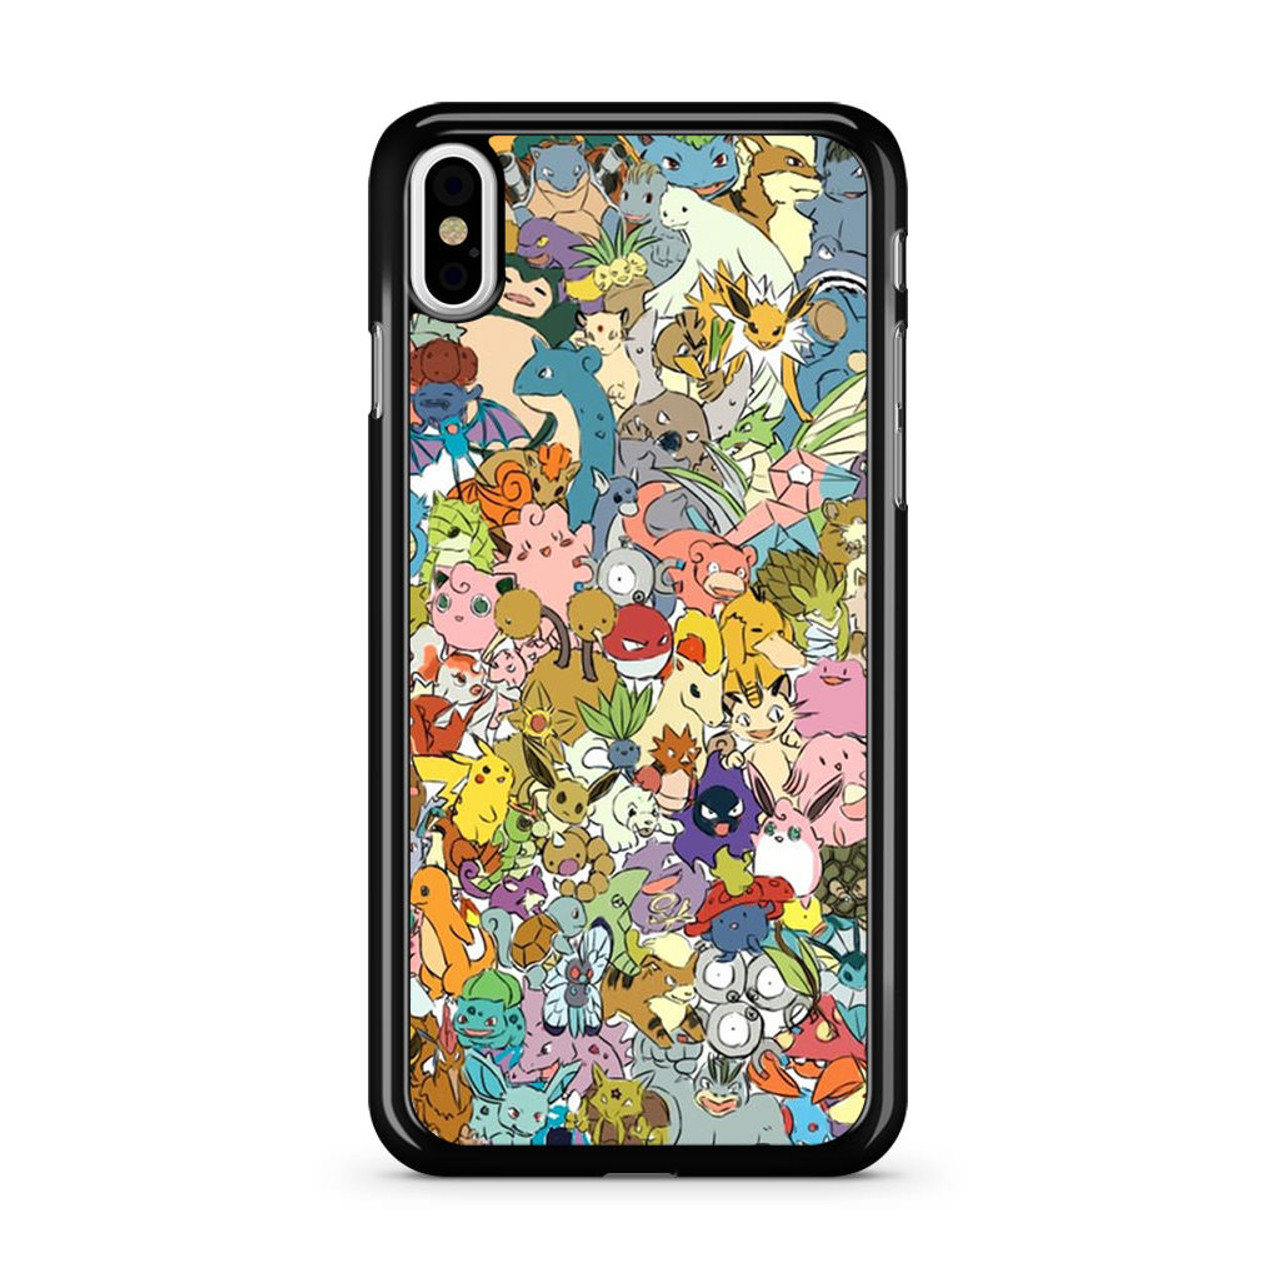 iphone xs max character case